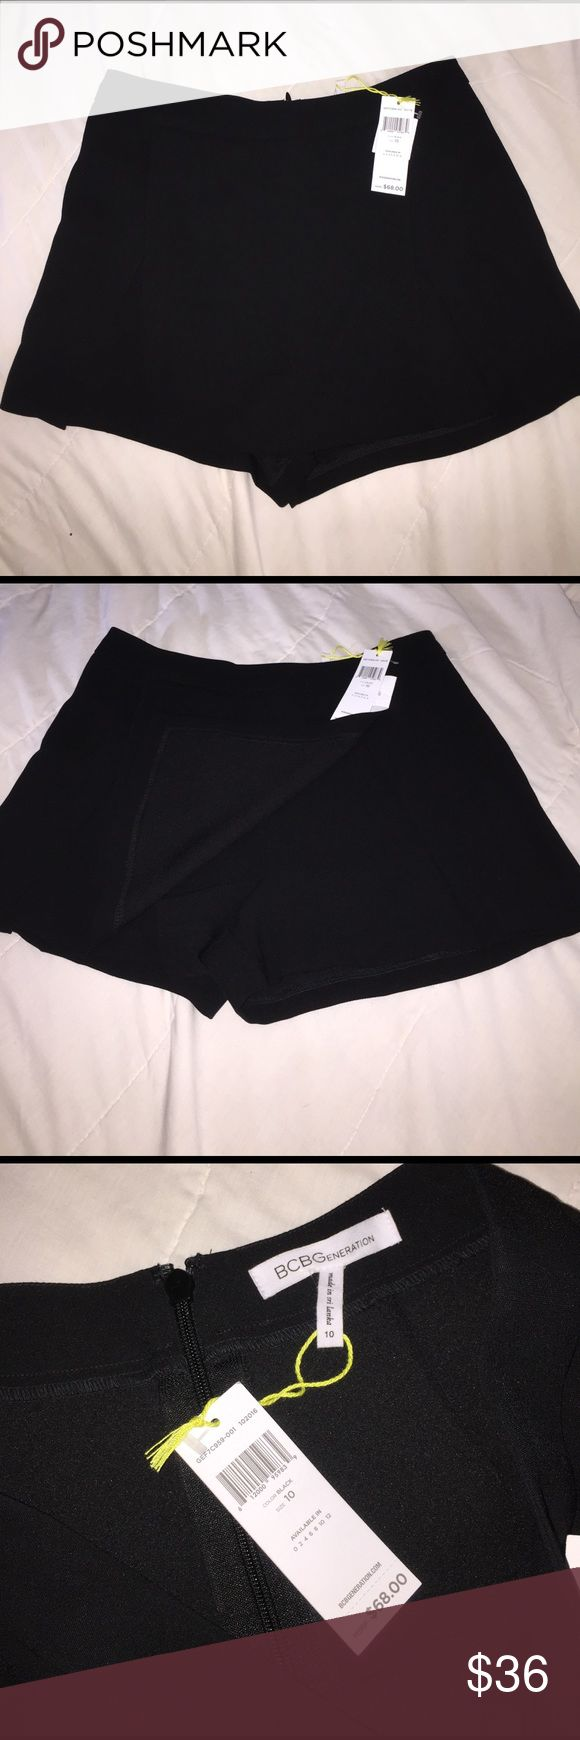 """BCBGeneration short with overlay - like a mini Do you feel like wearing a skirt or shorts or both? These shorts have an overlay to look like a skirt. 14"""" from waist to bottom of skirt panel. Never worn. BCBGeneration Skirts Mini"""